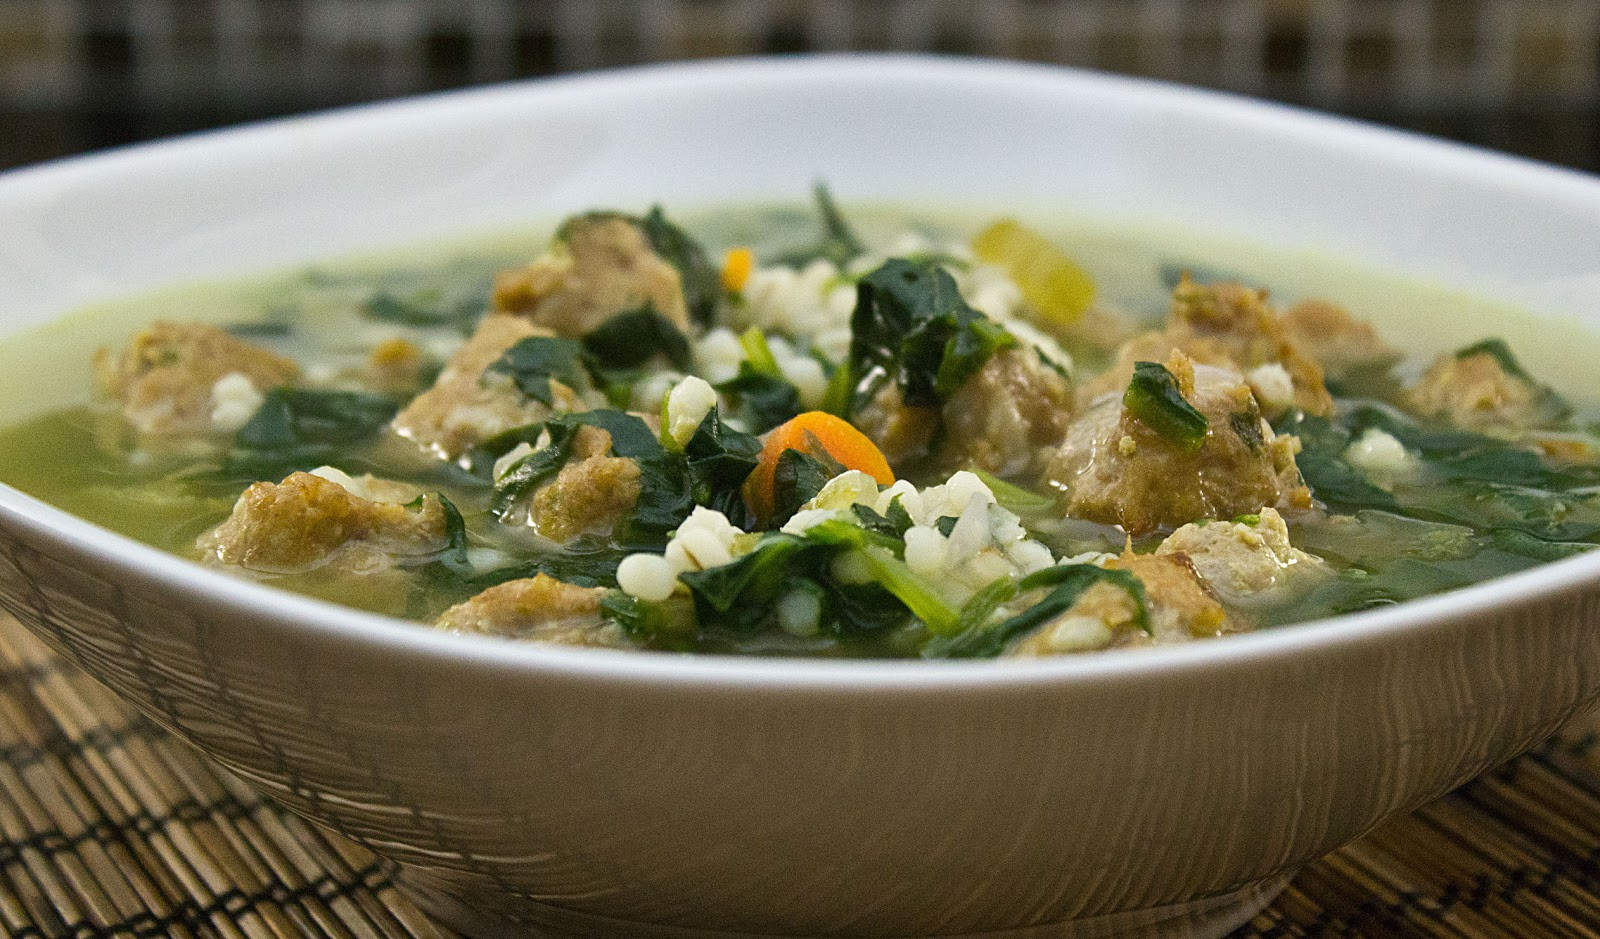 Italian Wedding Soup Recipes With Spinach  fabulous fridays Italian Wedding soup